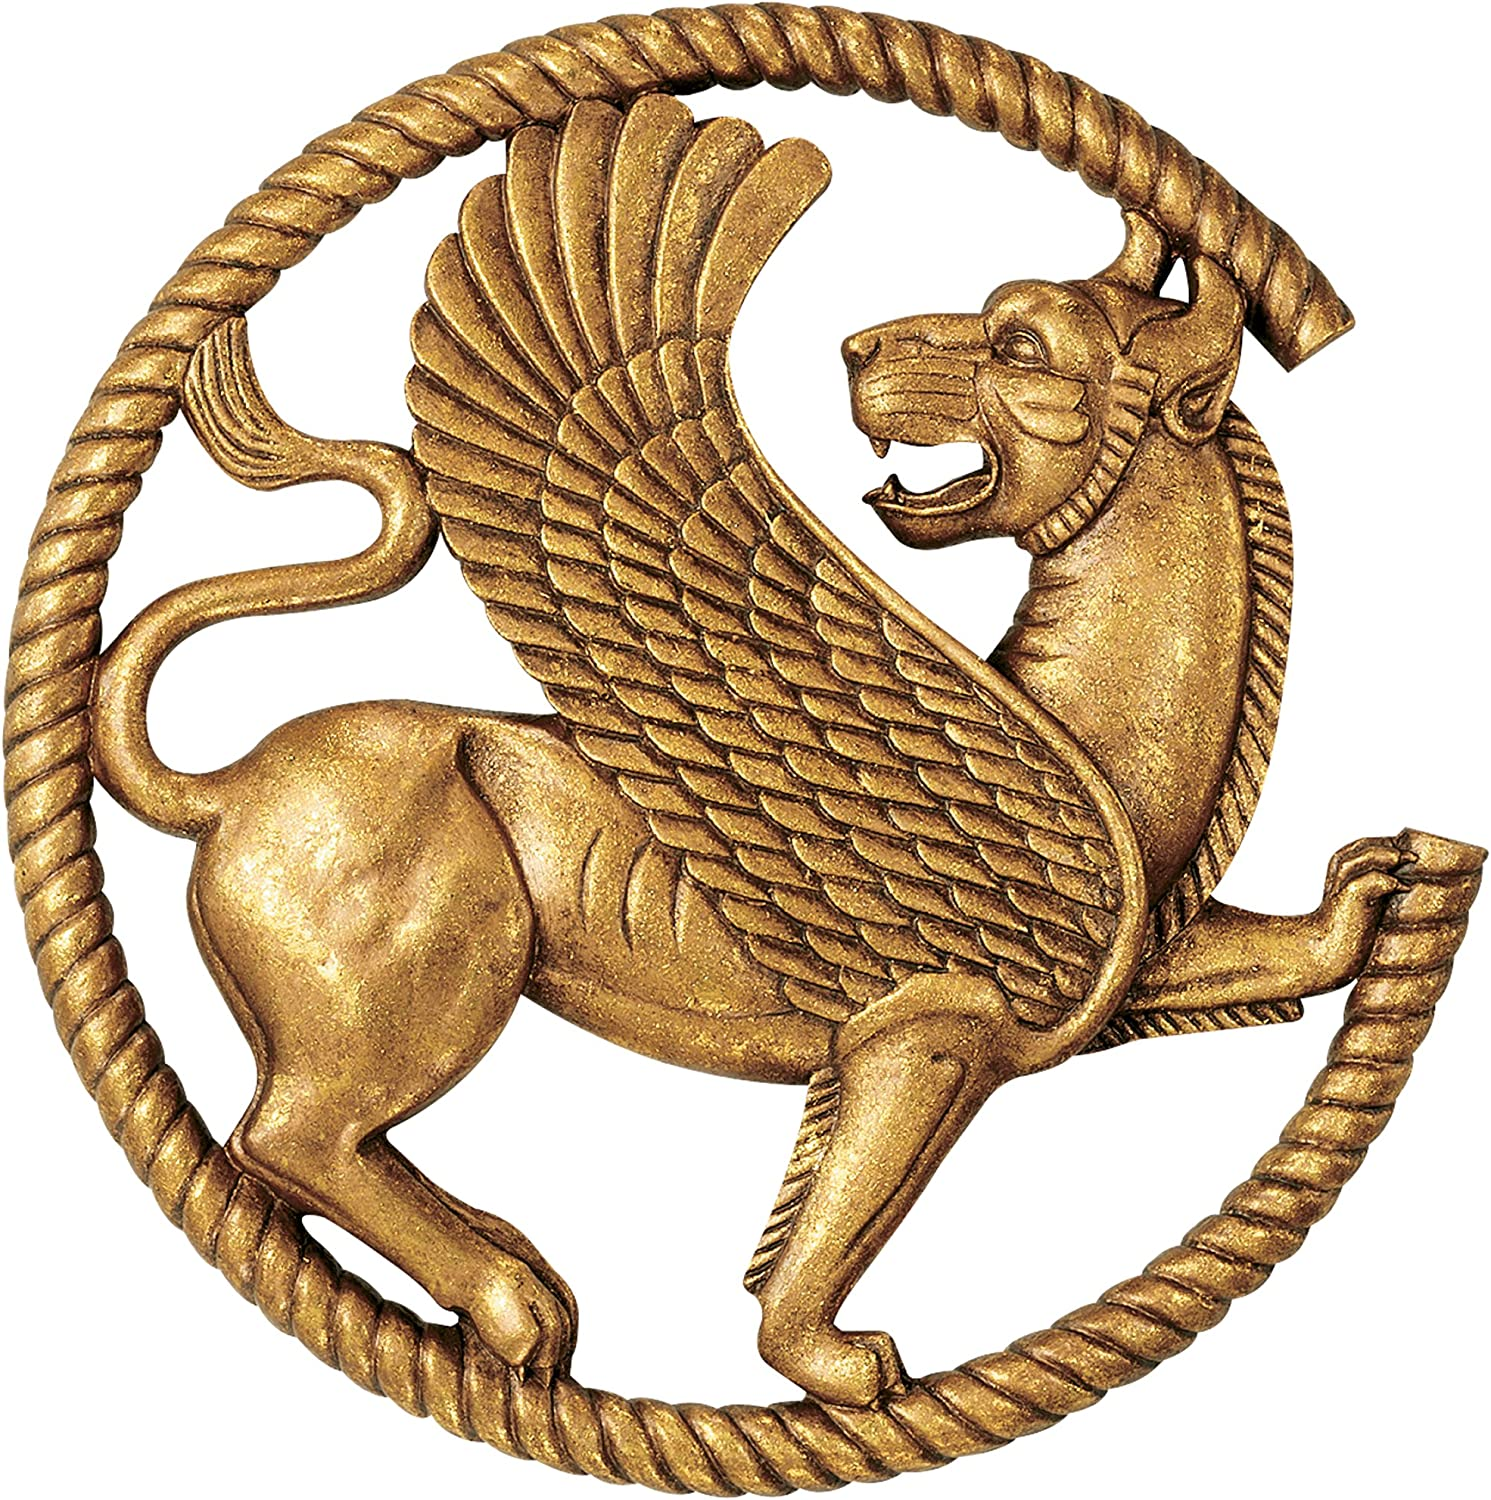 Design Minneapolis Mall Toscano Persian Griffin Wall Sculpture 12 Inch Antique 2021 spring and summer new